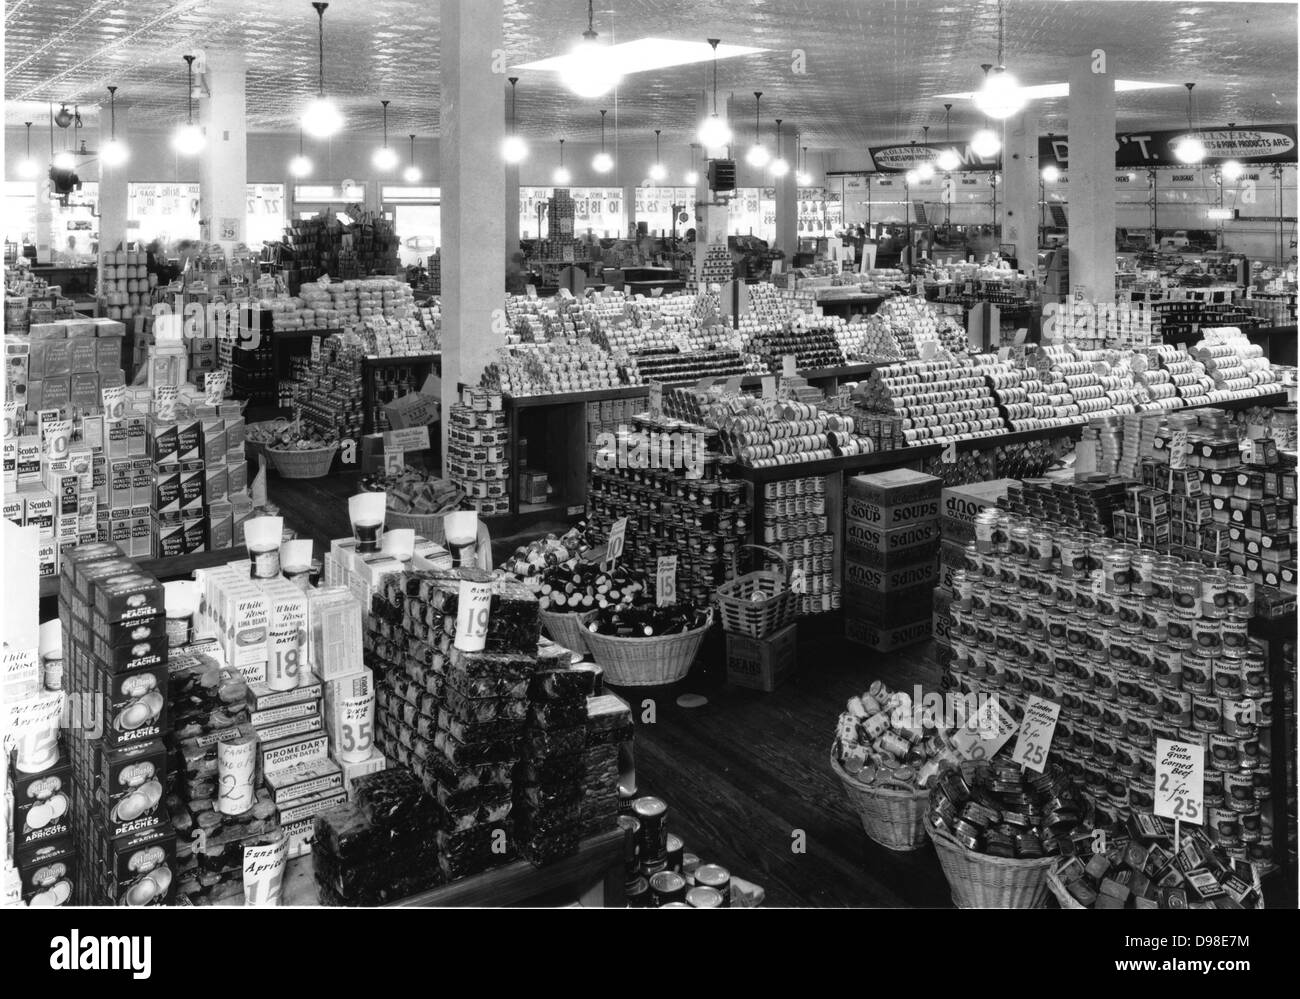 A well-stocked grocery store in America in the 1920s. - Stock Image